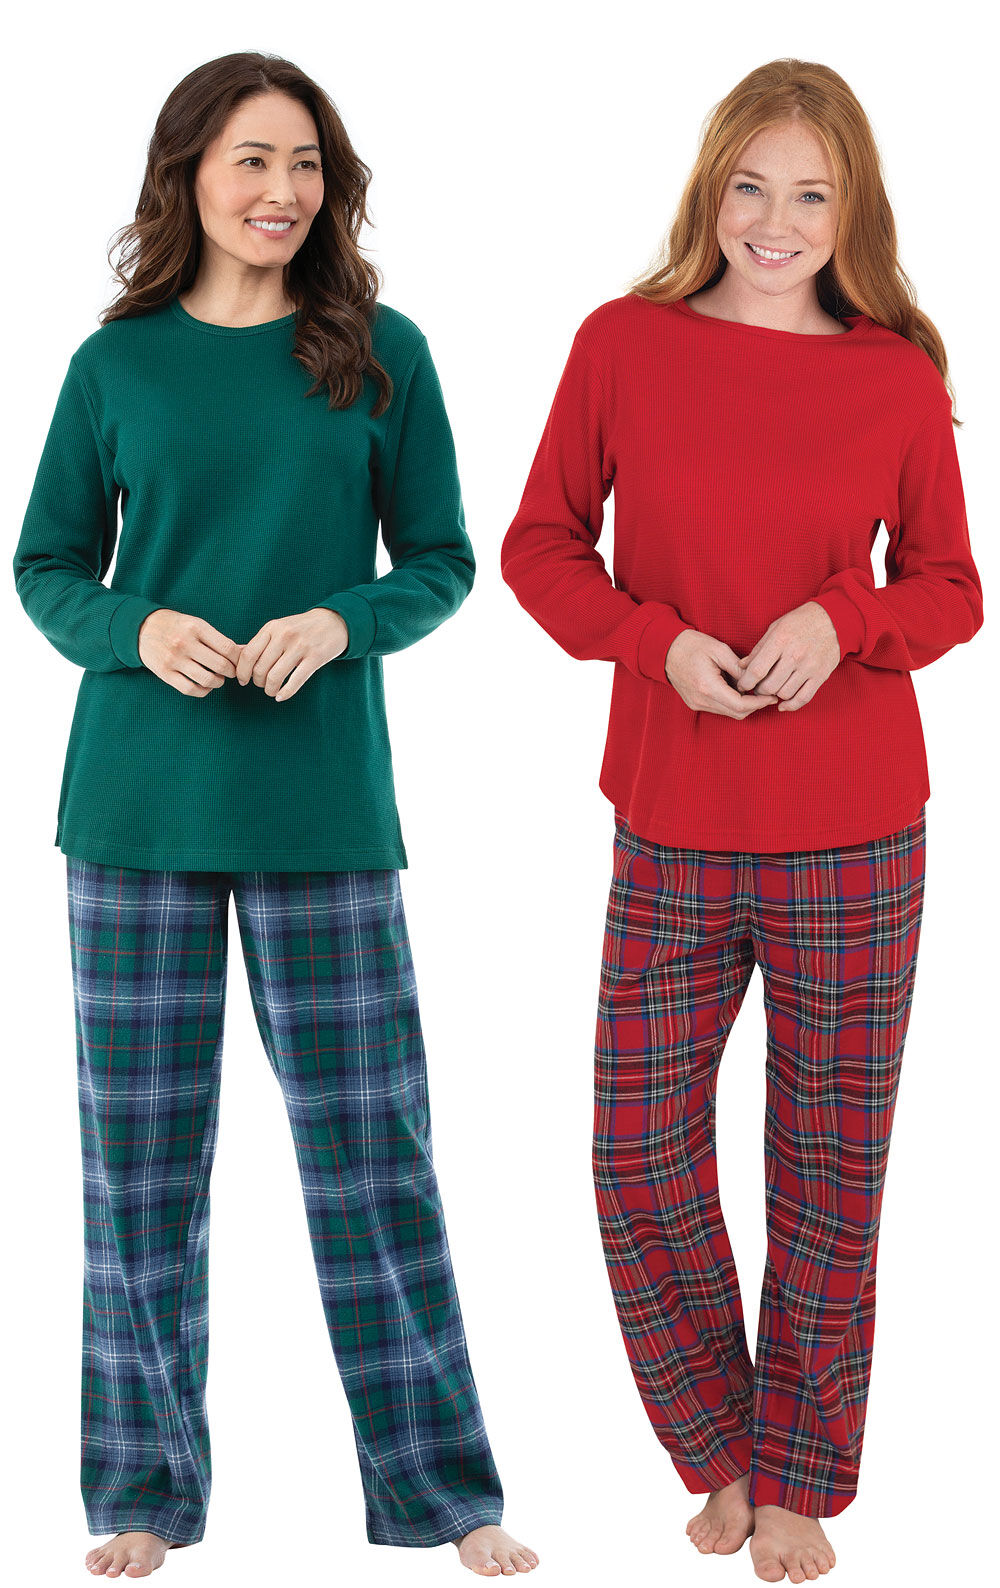 Holiday Plaid Thermal-Top Pajama Gift Set in Women's Great ...